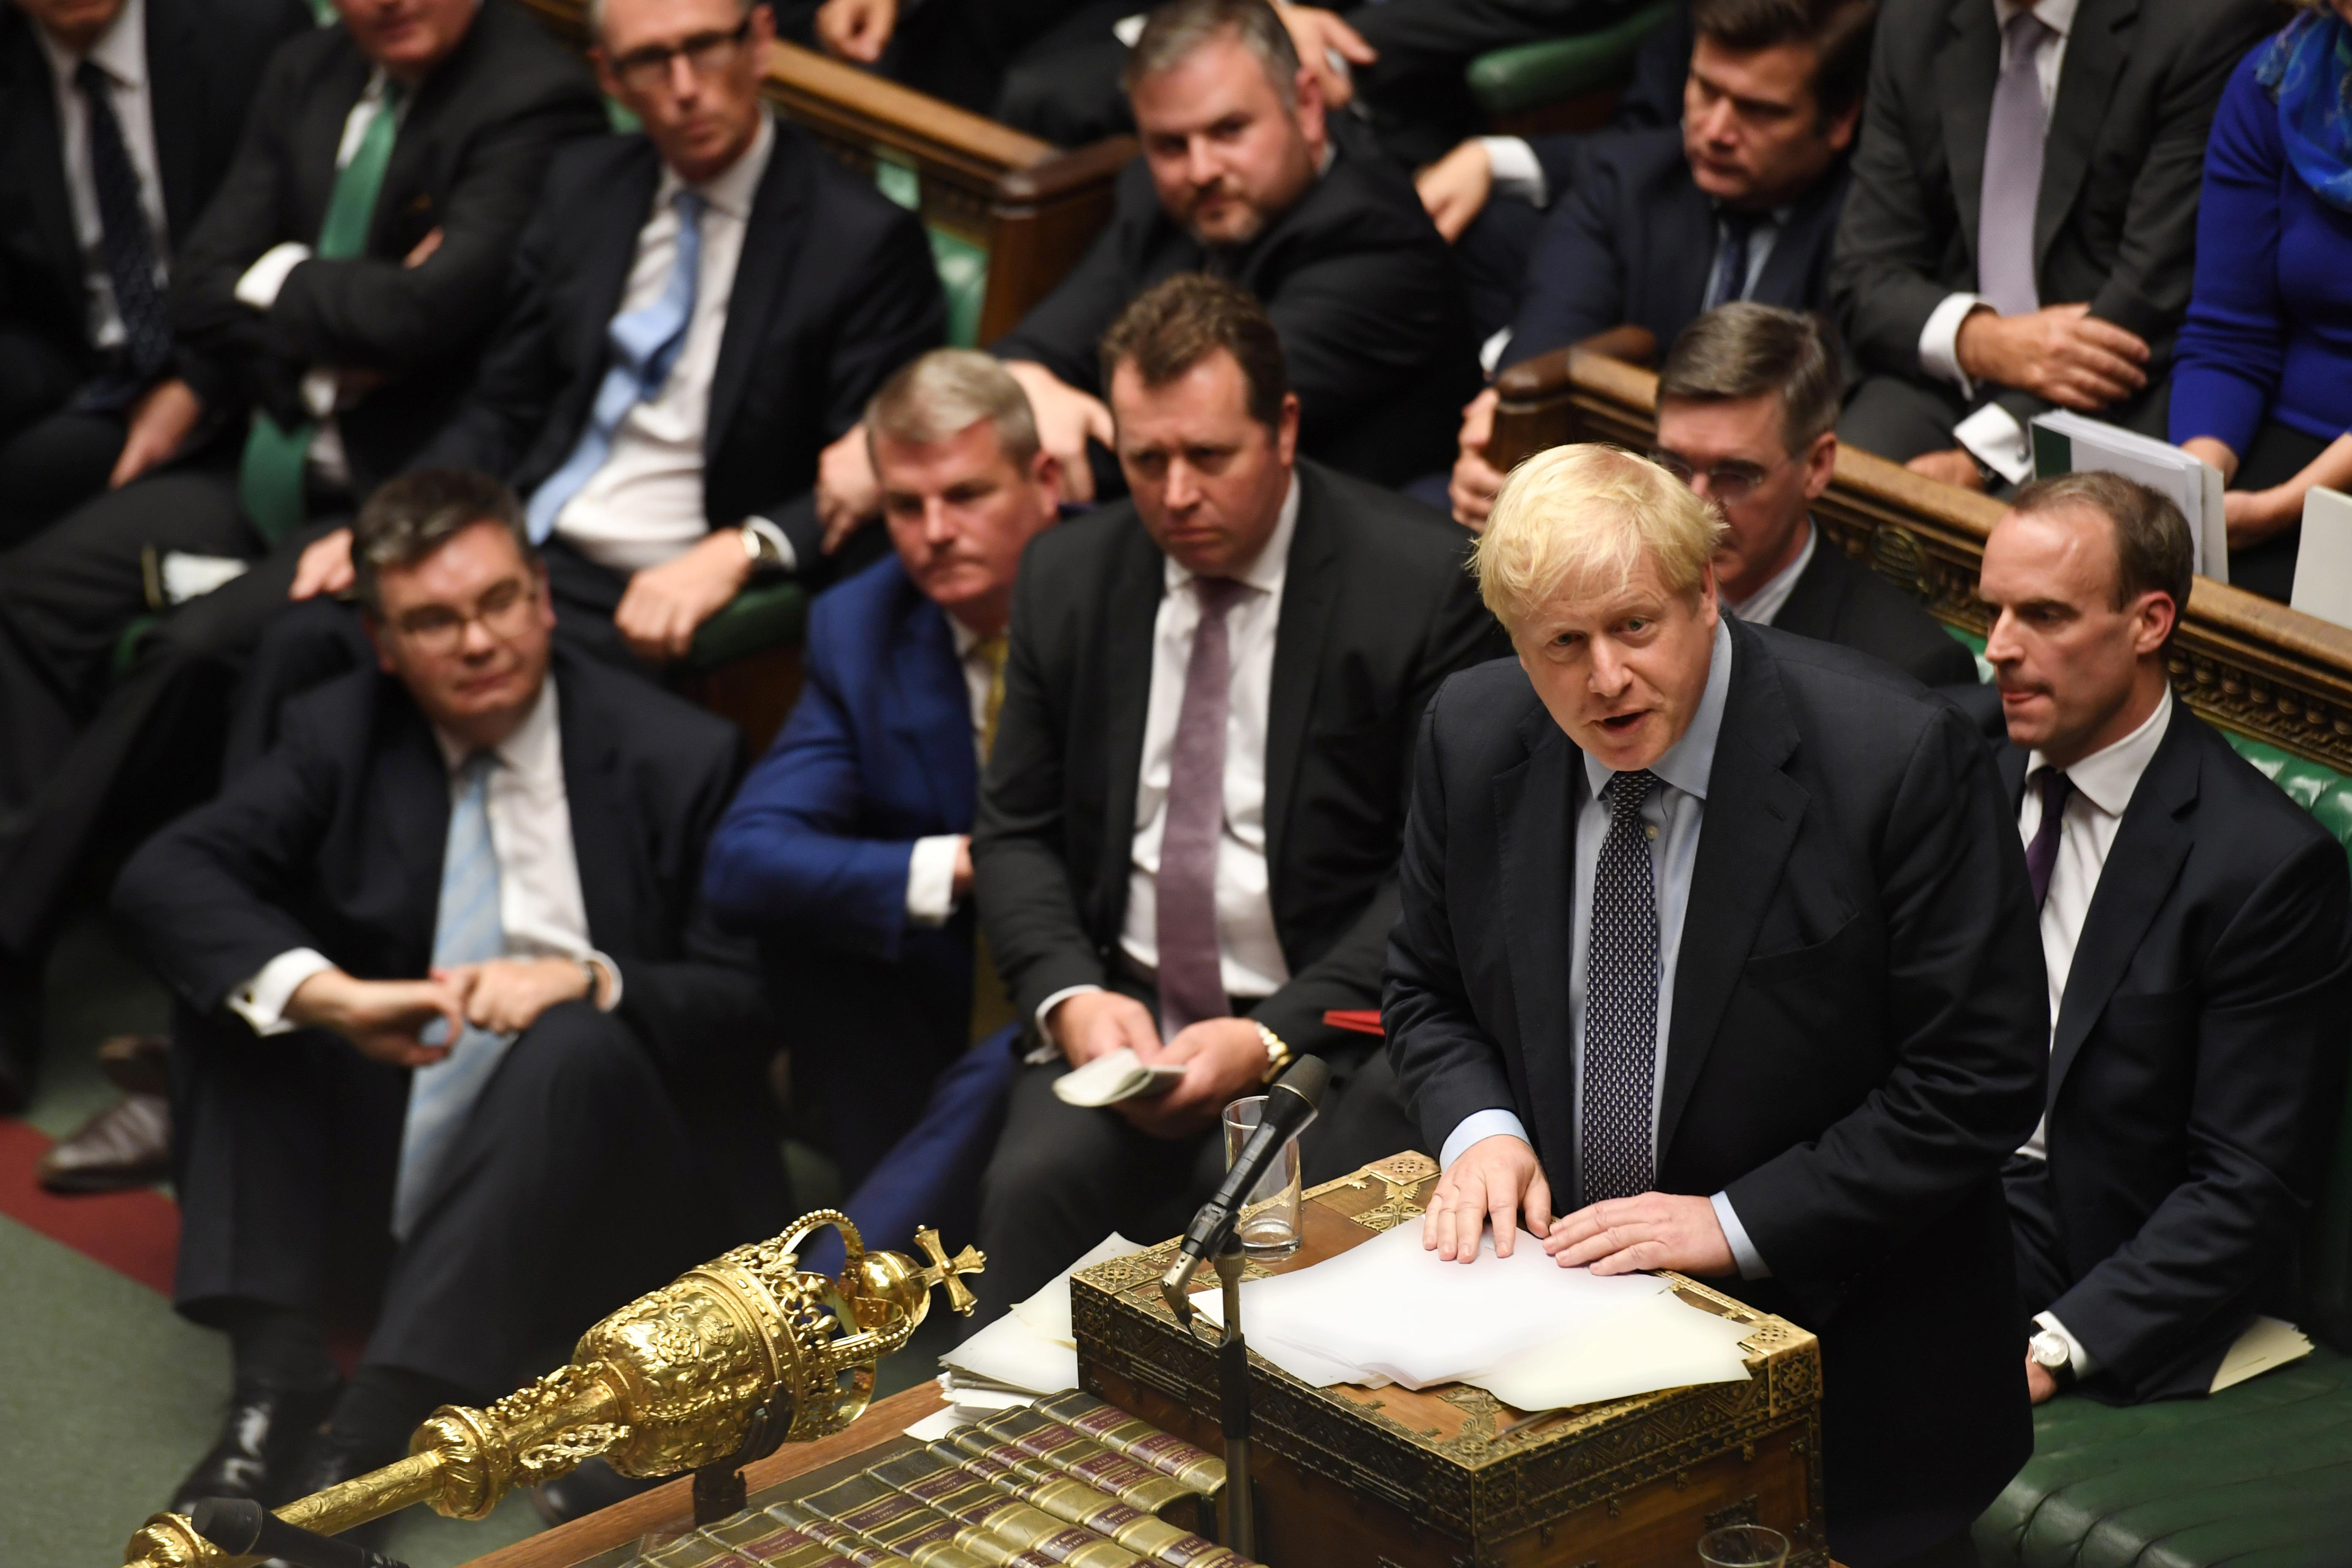 EU will delay Brexit until February if Johnson fails to ratify deal...